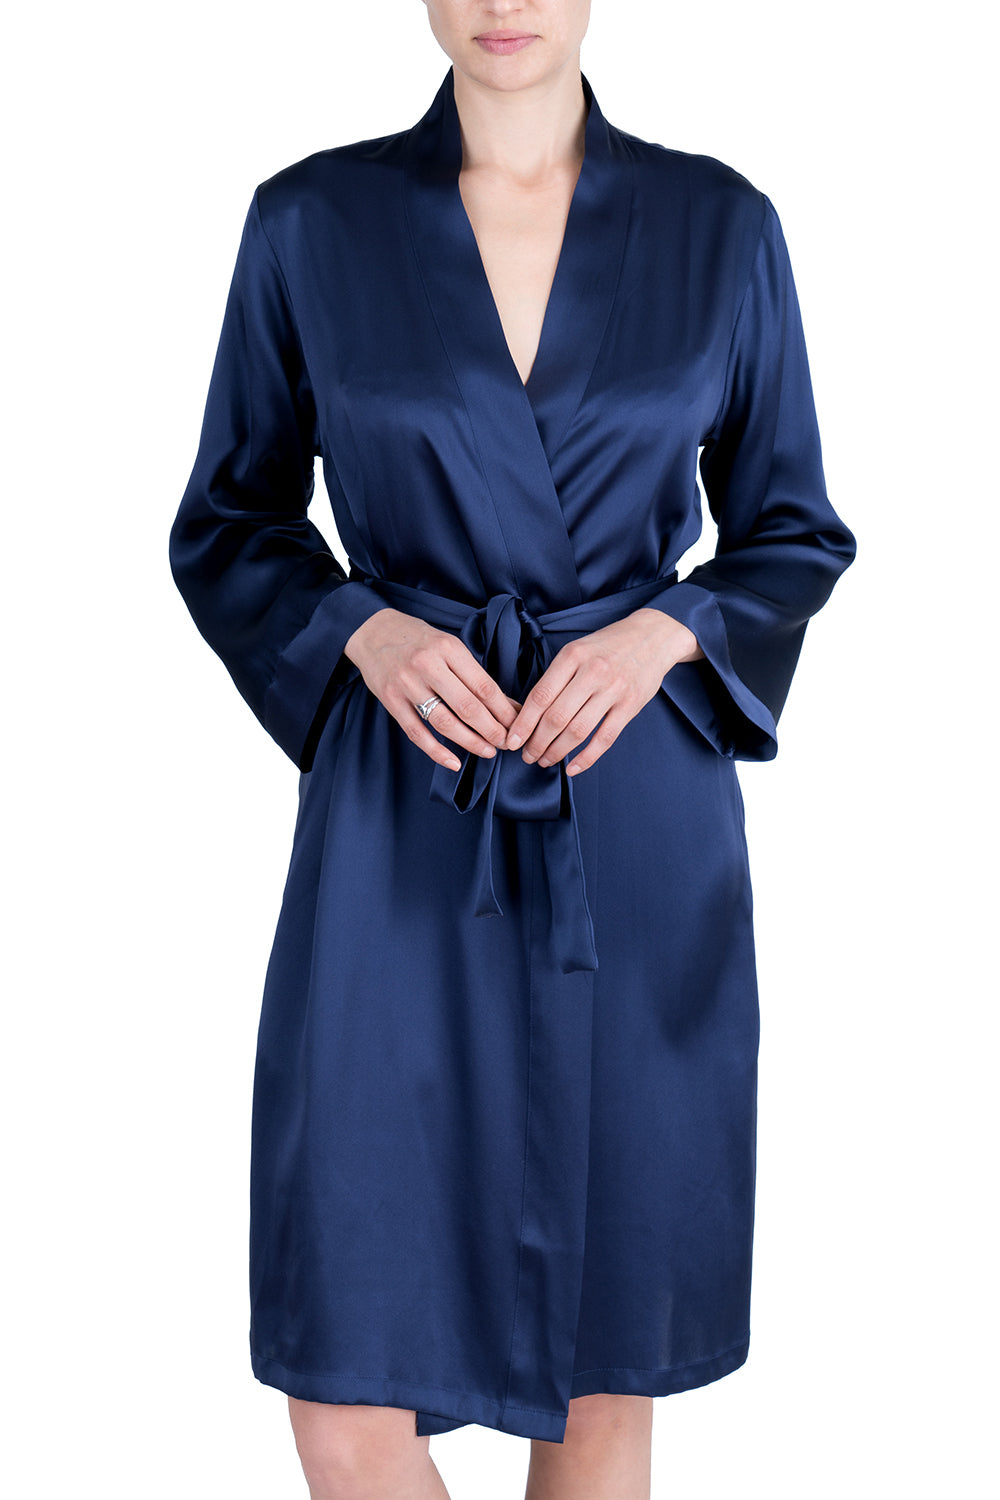 Women's Silk Sleepwear 100% Silk Robe